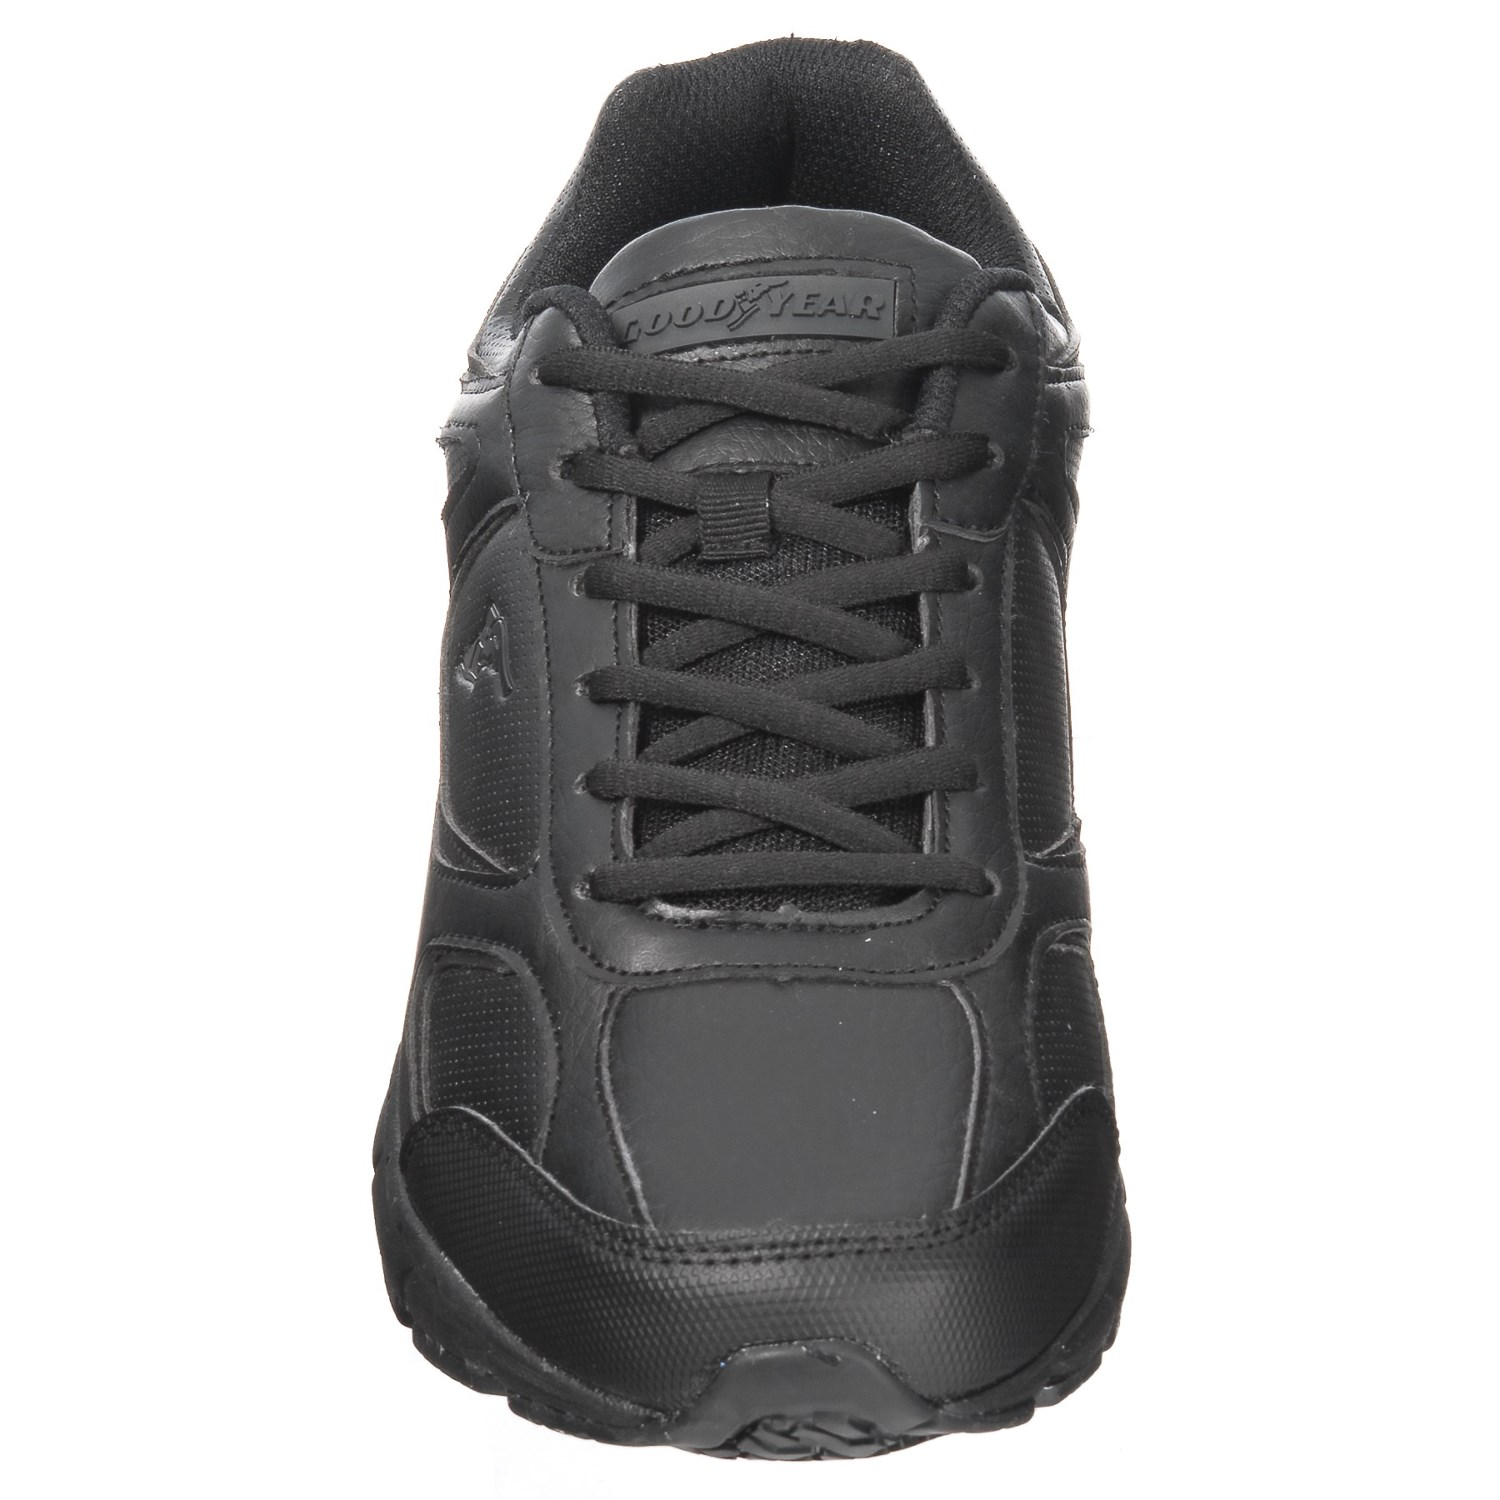 Goodyear Stride Non Slip Work Shoes For Men Save 79